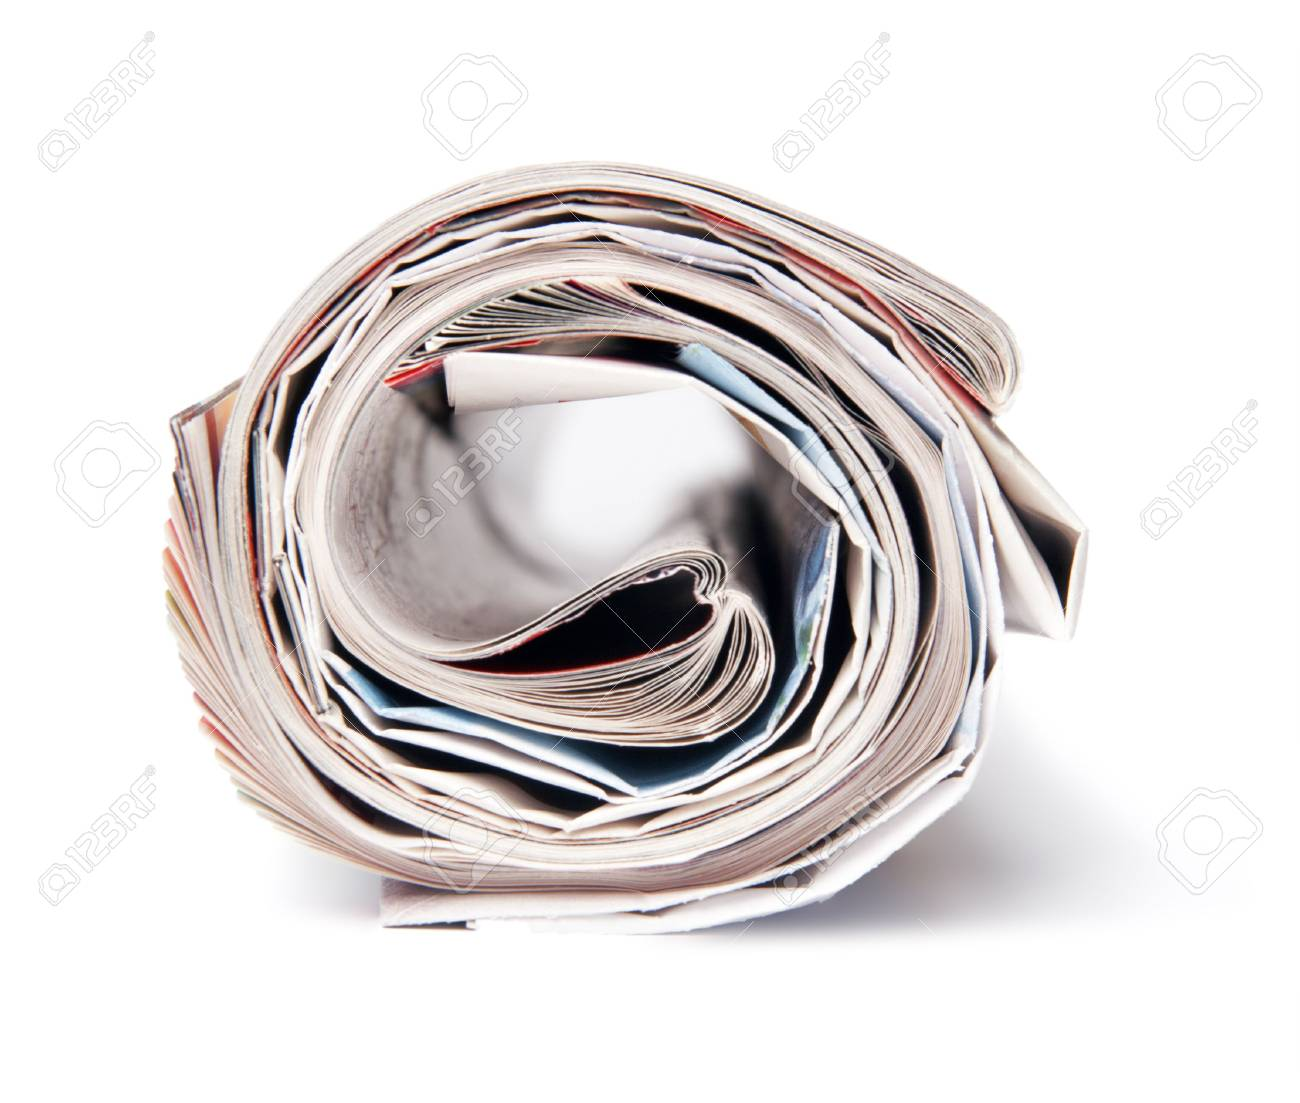 The newspaper curtailed into a tube on a white background. - 4599798